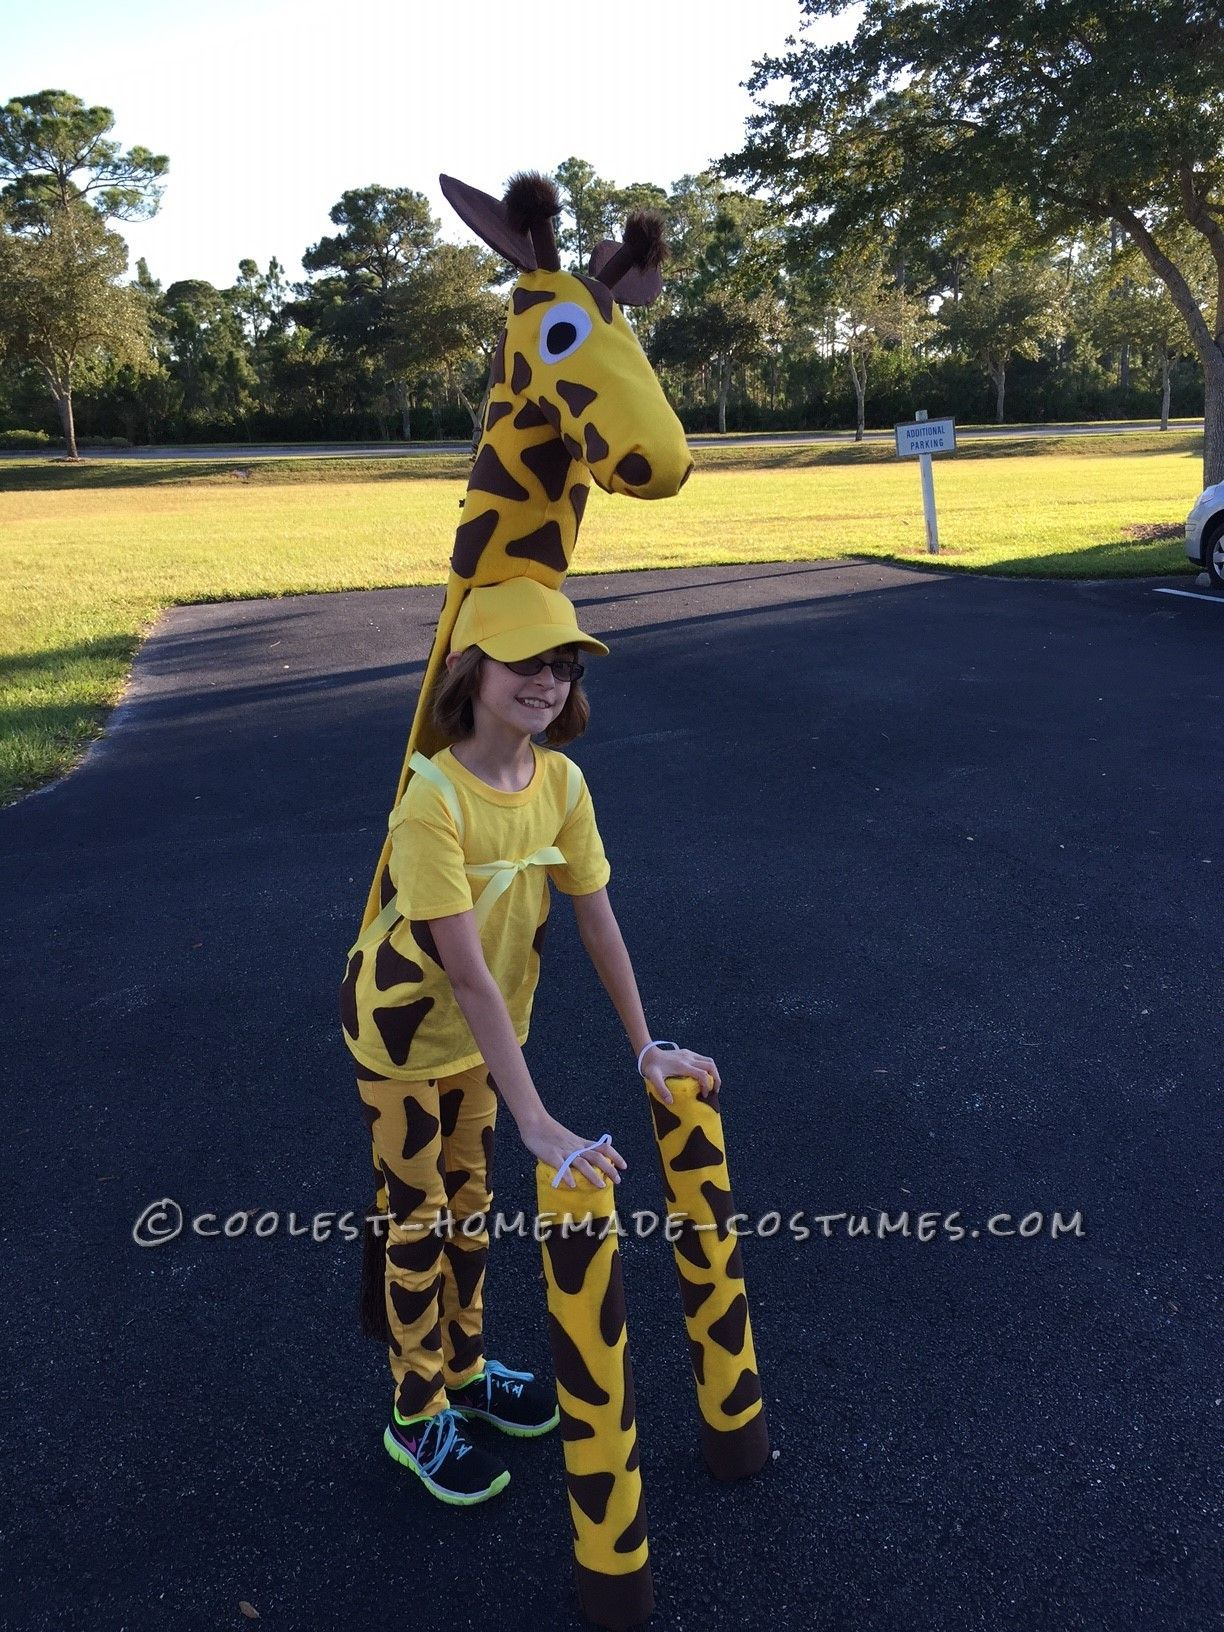 2d4f0e347 Giraffe-don't want it to look so cute and like a stuffed animal-more in  line with other masks (painted, paper mache)